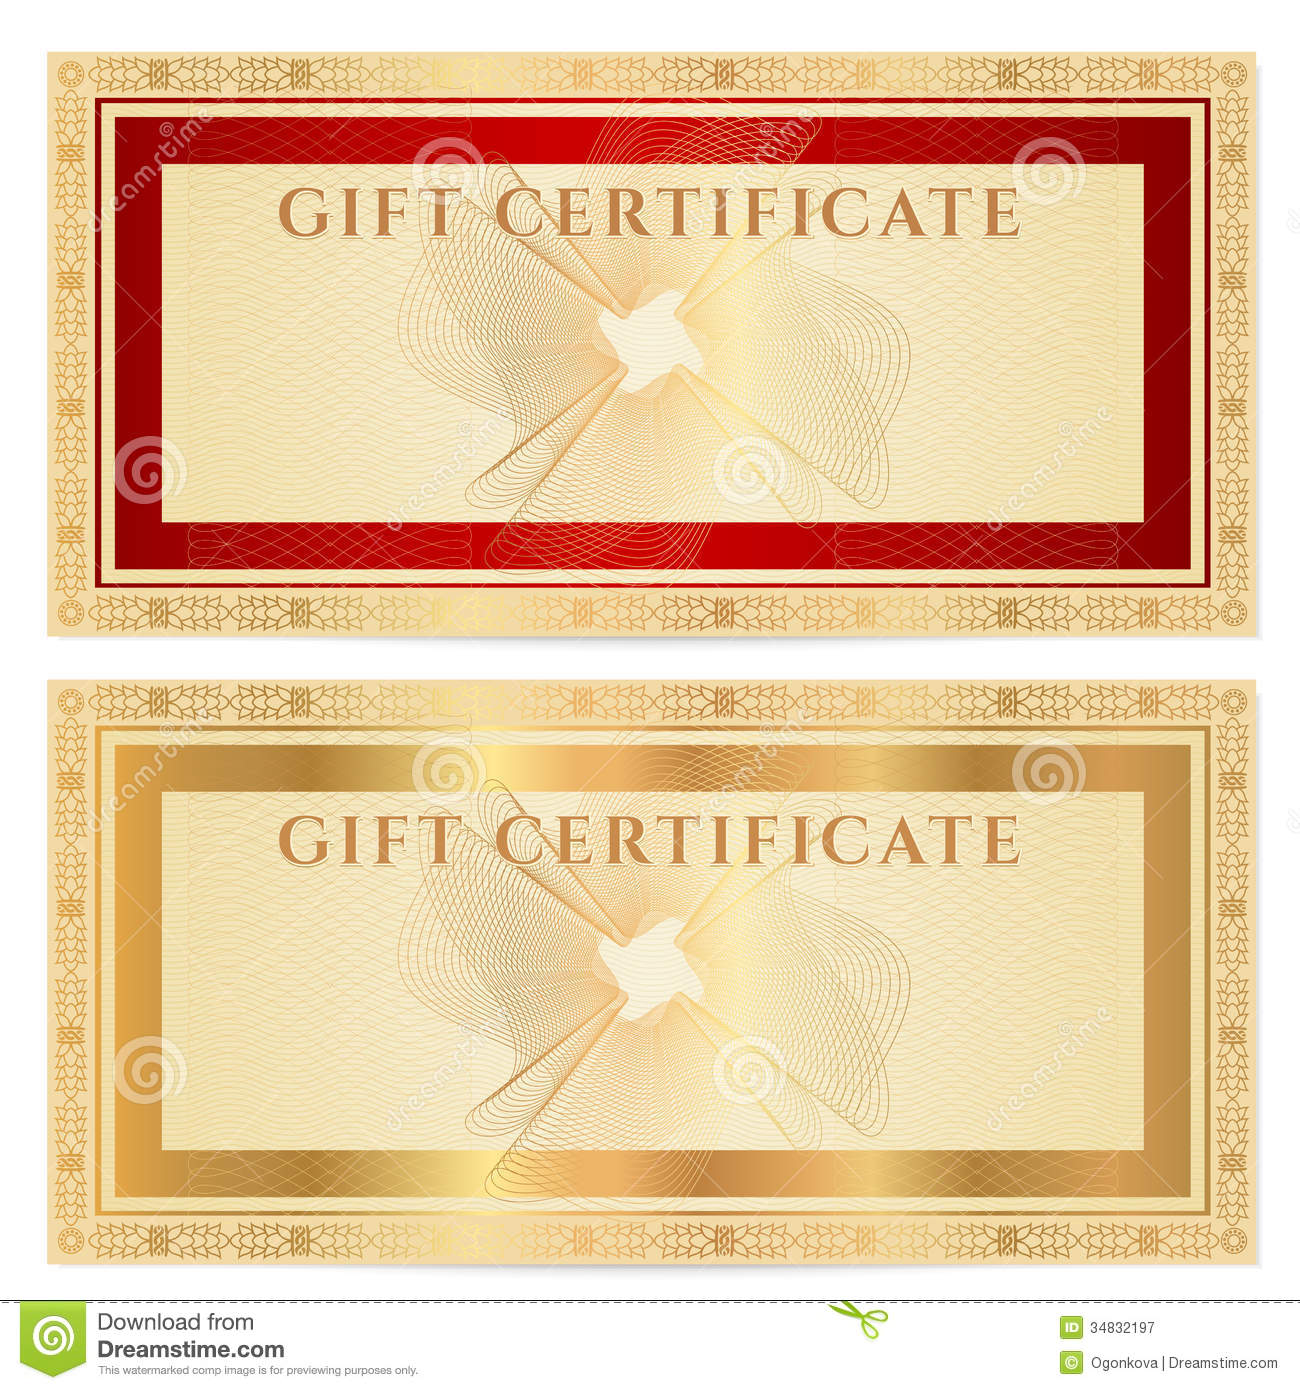 Gift certificate voucher template with borders stock vector gift certificate voucher template with borders yadclub